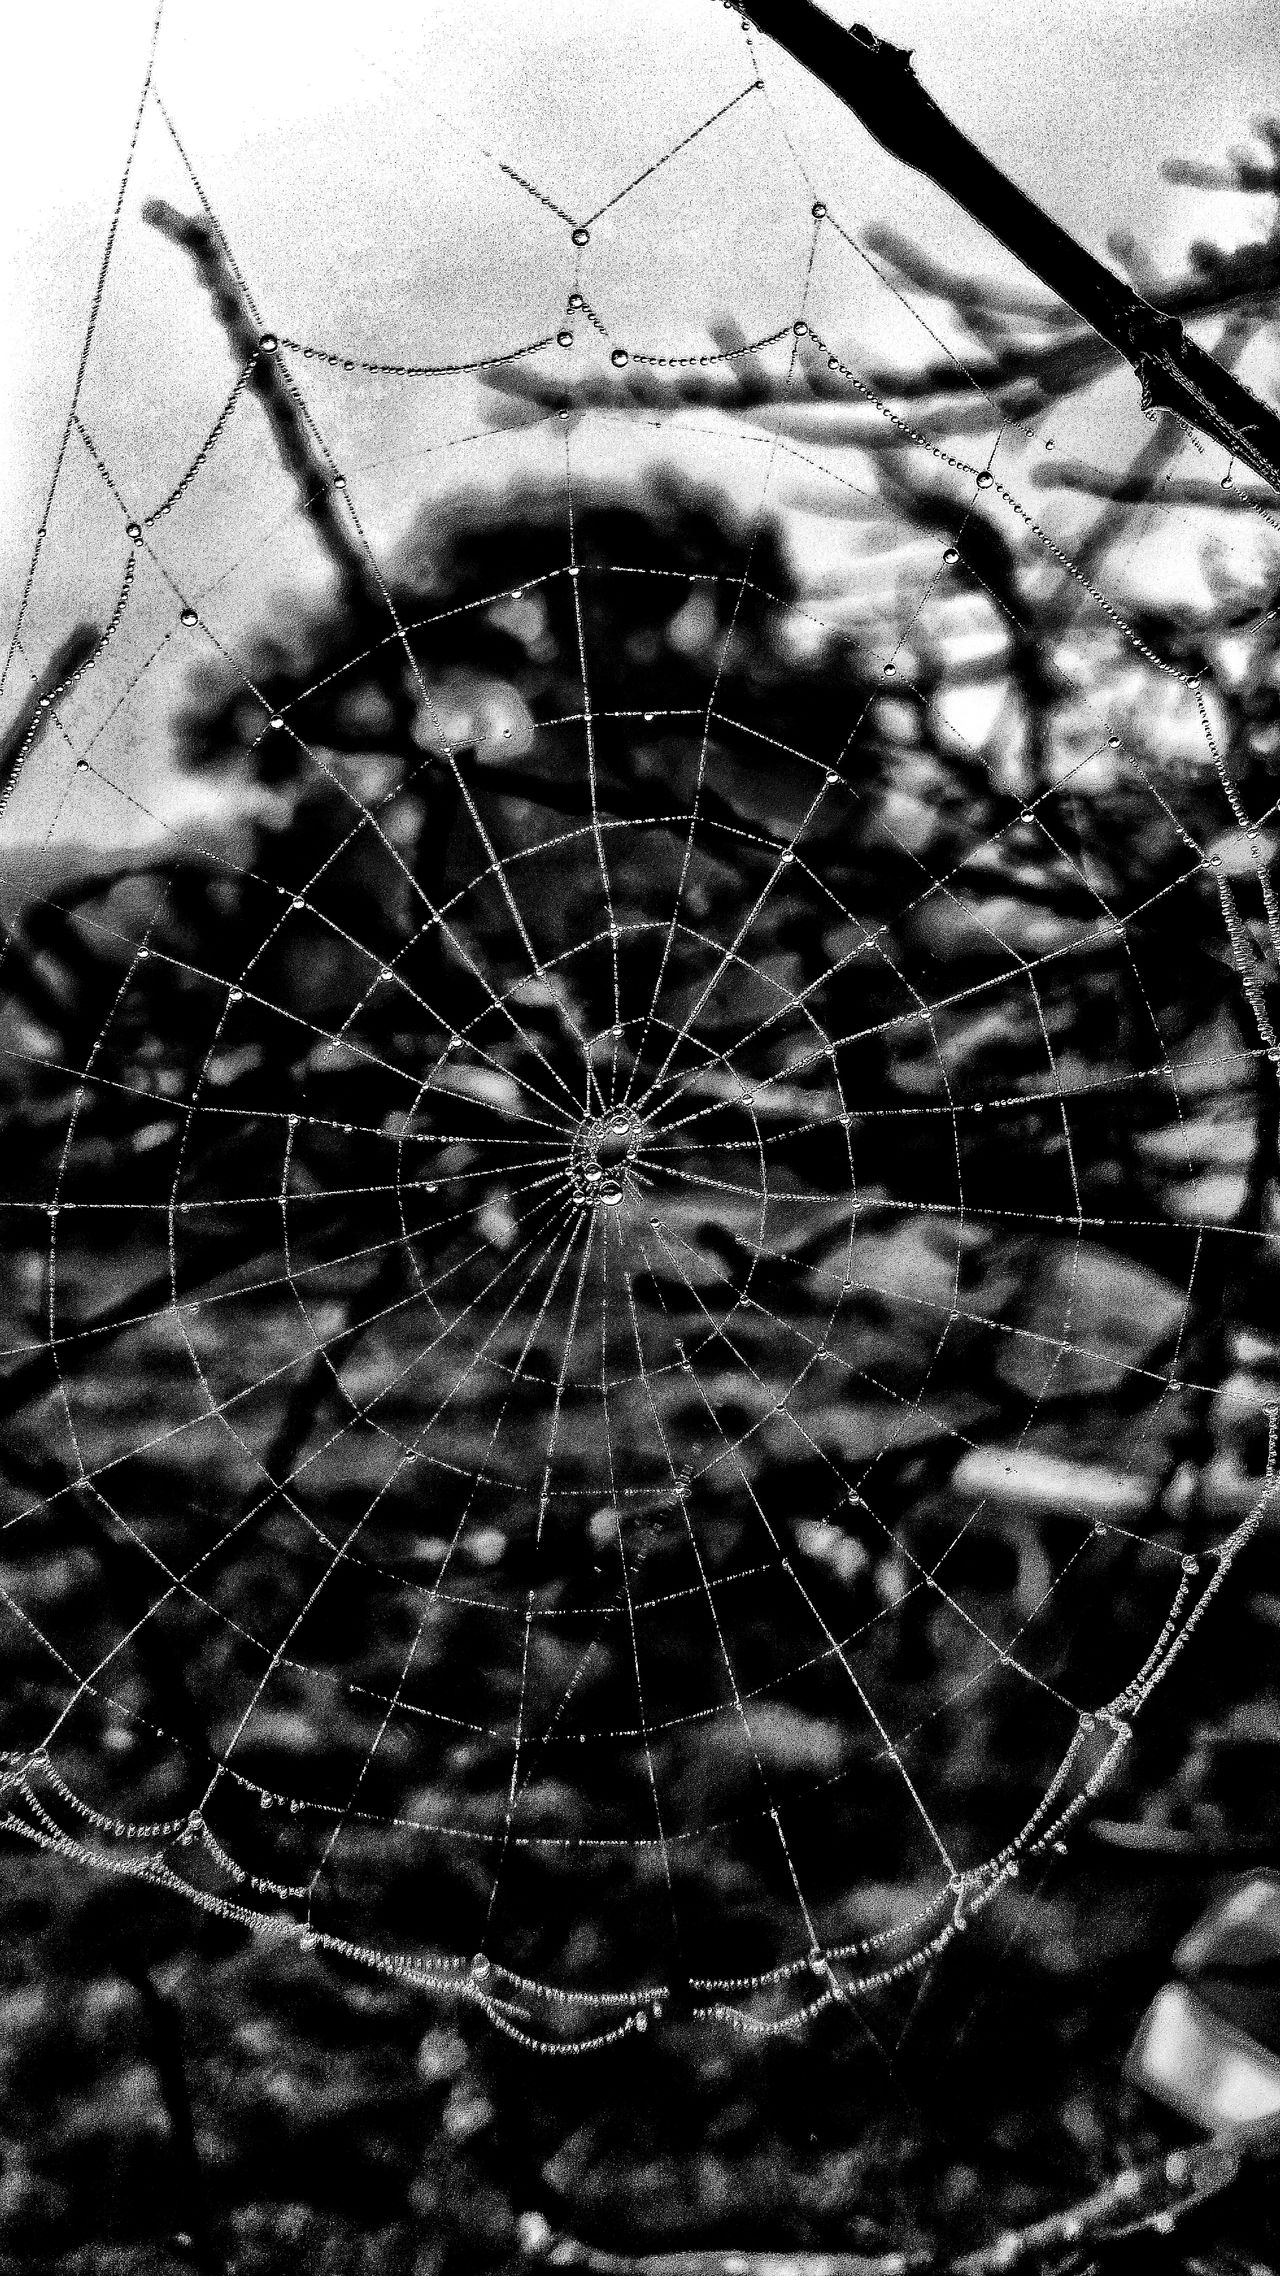 Close-up Spider Web Web Dew Dewdrops Dew Drops Dew Drops On Spider Web Rough Designs In Nature Textured  Backgrounds Shapes And Forms Still Life Natures Diversities Bare Tree Patterns In Nature